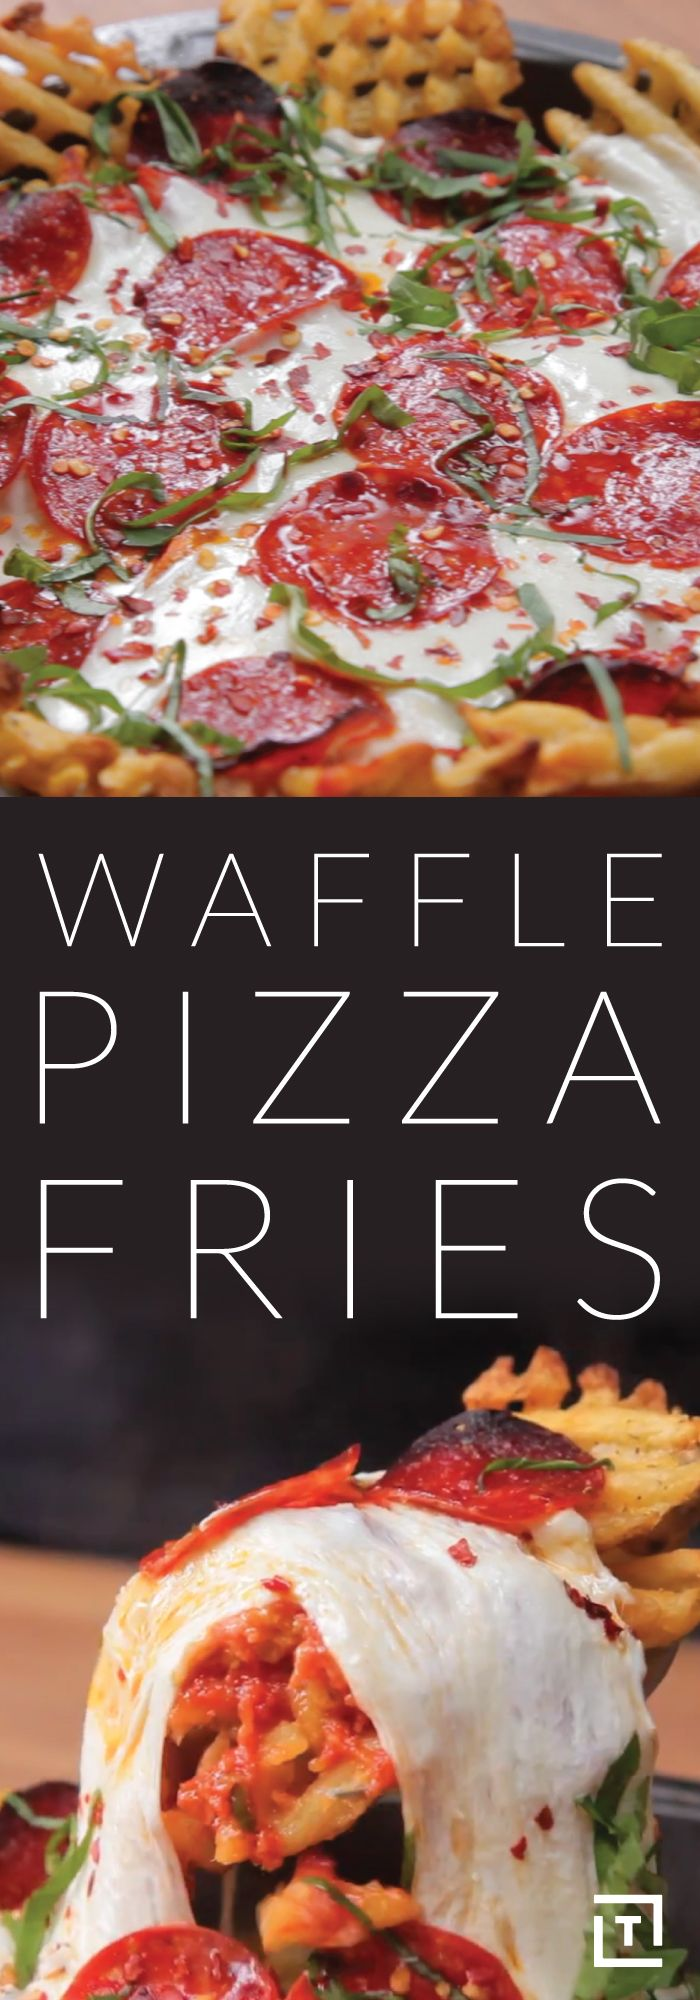 If there's one thing you should know by now, it's that we love pizza. A lot. And so do you, apparently! We also love waffle fries, because who doesn't love waffle fries? If we told you we knew how to make a pizza out of waffle fries, you'd probably freak out from sheer happiness -- so what are you waiting for? Check out the following recipe from Food Steez and change your life forever. Godspeed, friend.